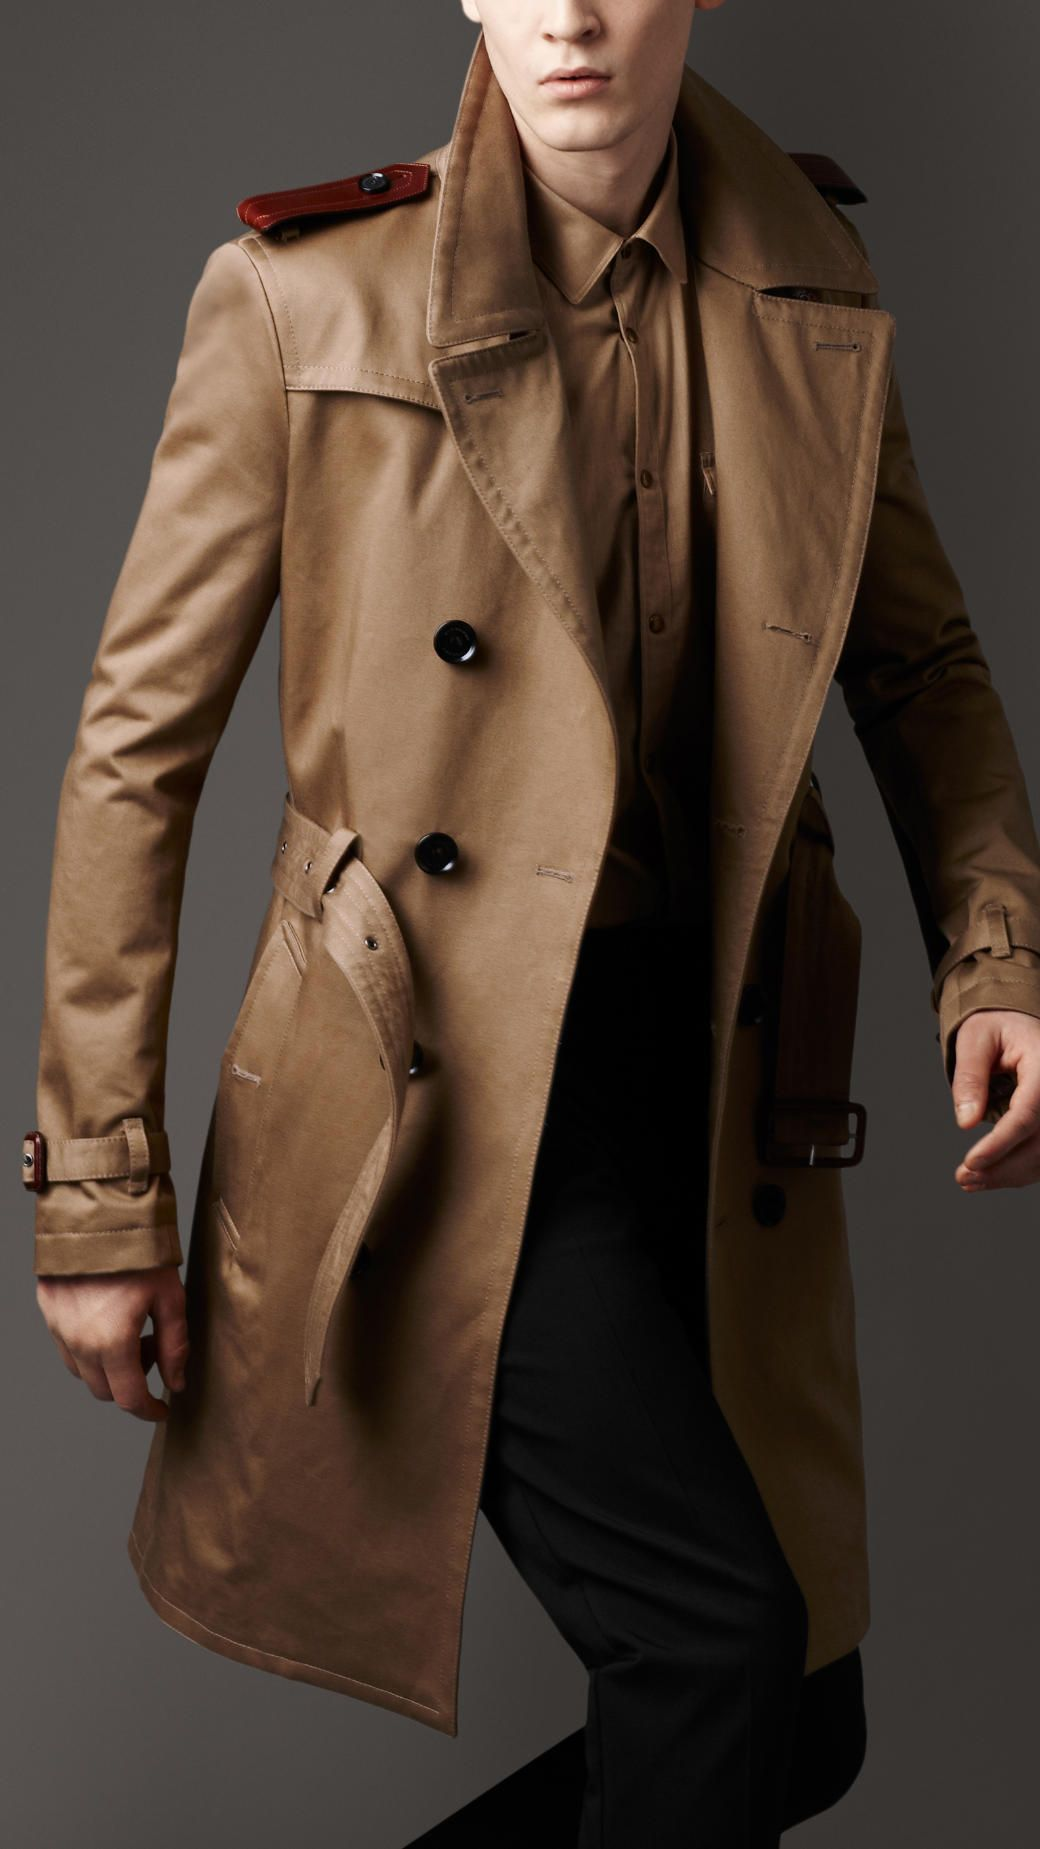 men jacket Military slim back - Google Search | fashion-men's ...